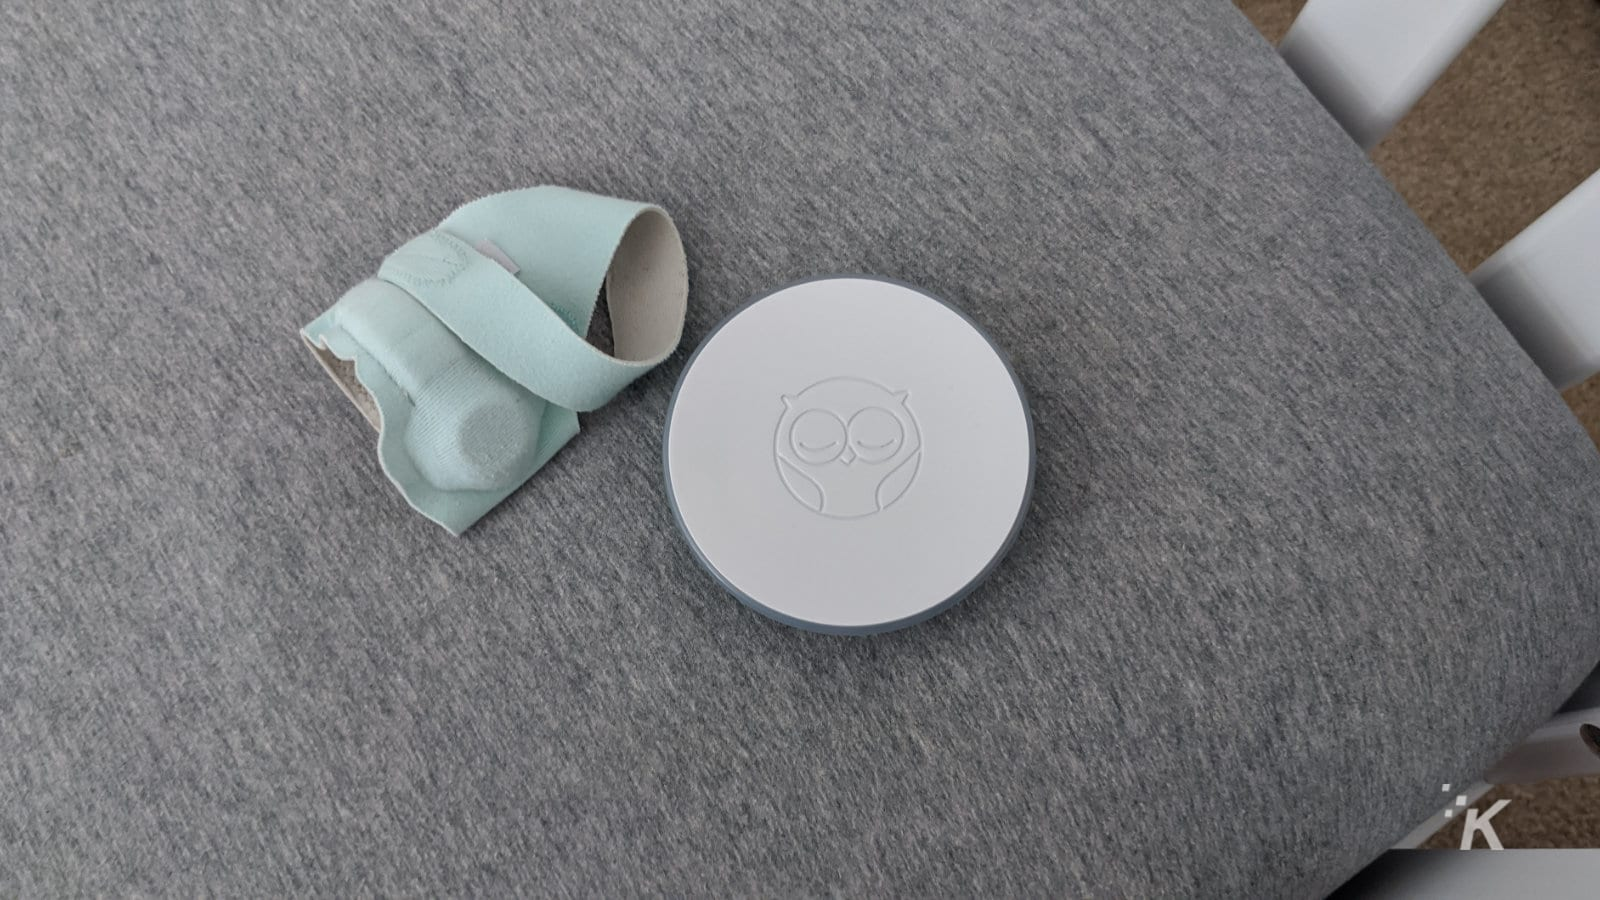 owlet smart sock and base unit on a crib mattress